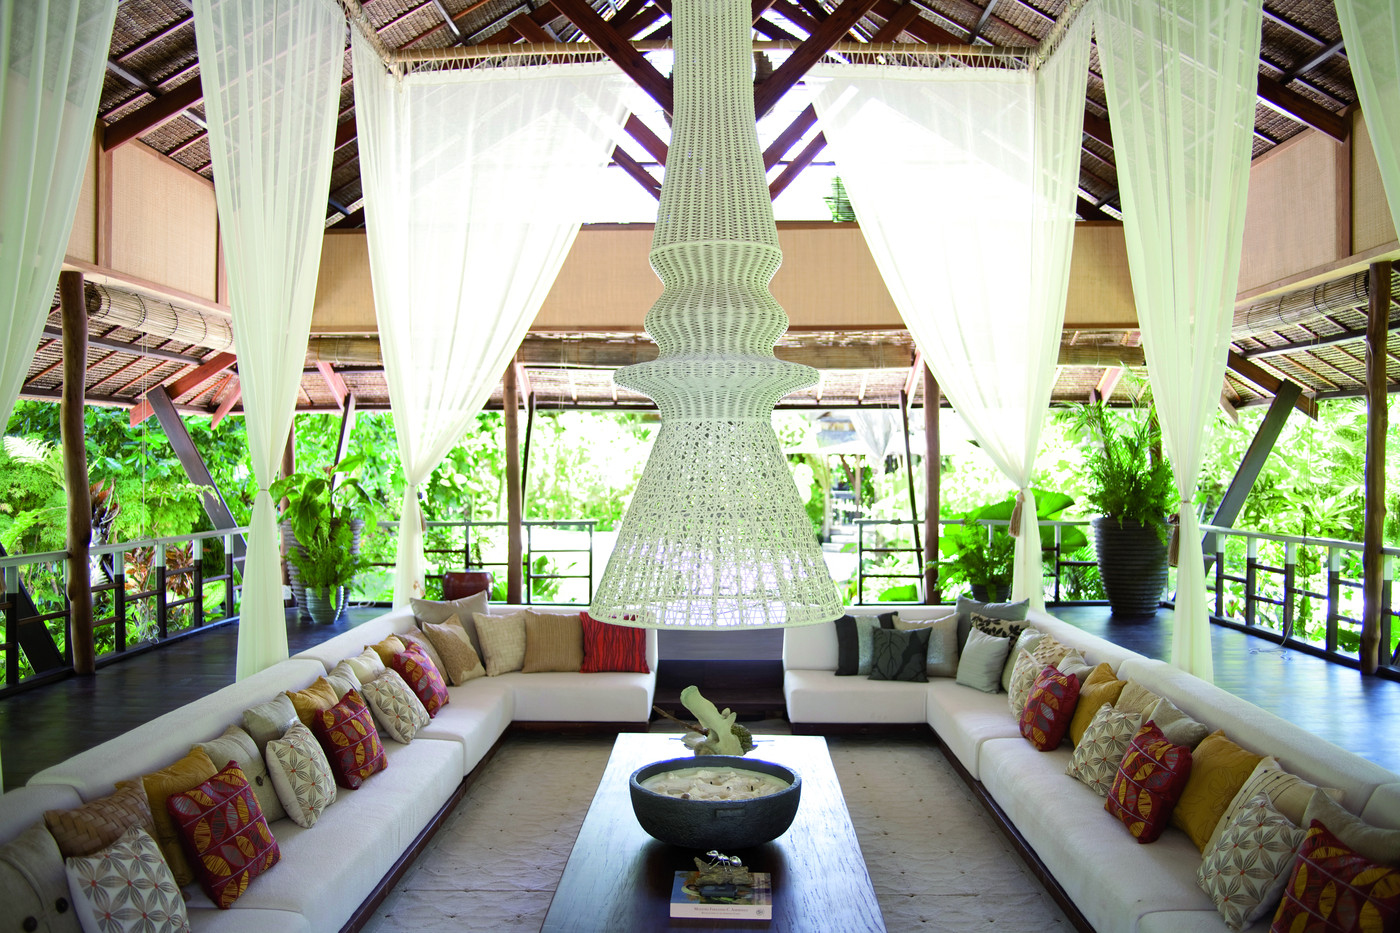 Asian furniture photos 13 of 38 for Tropical living room furniture